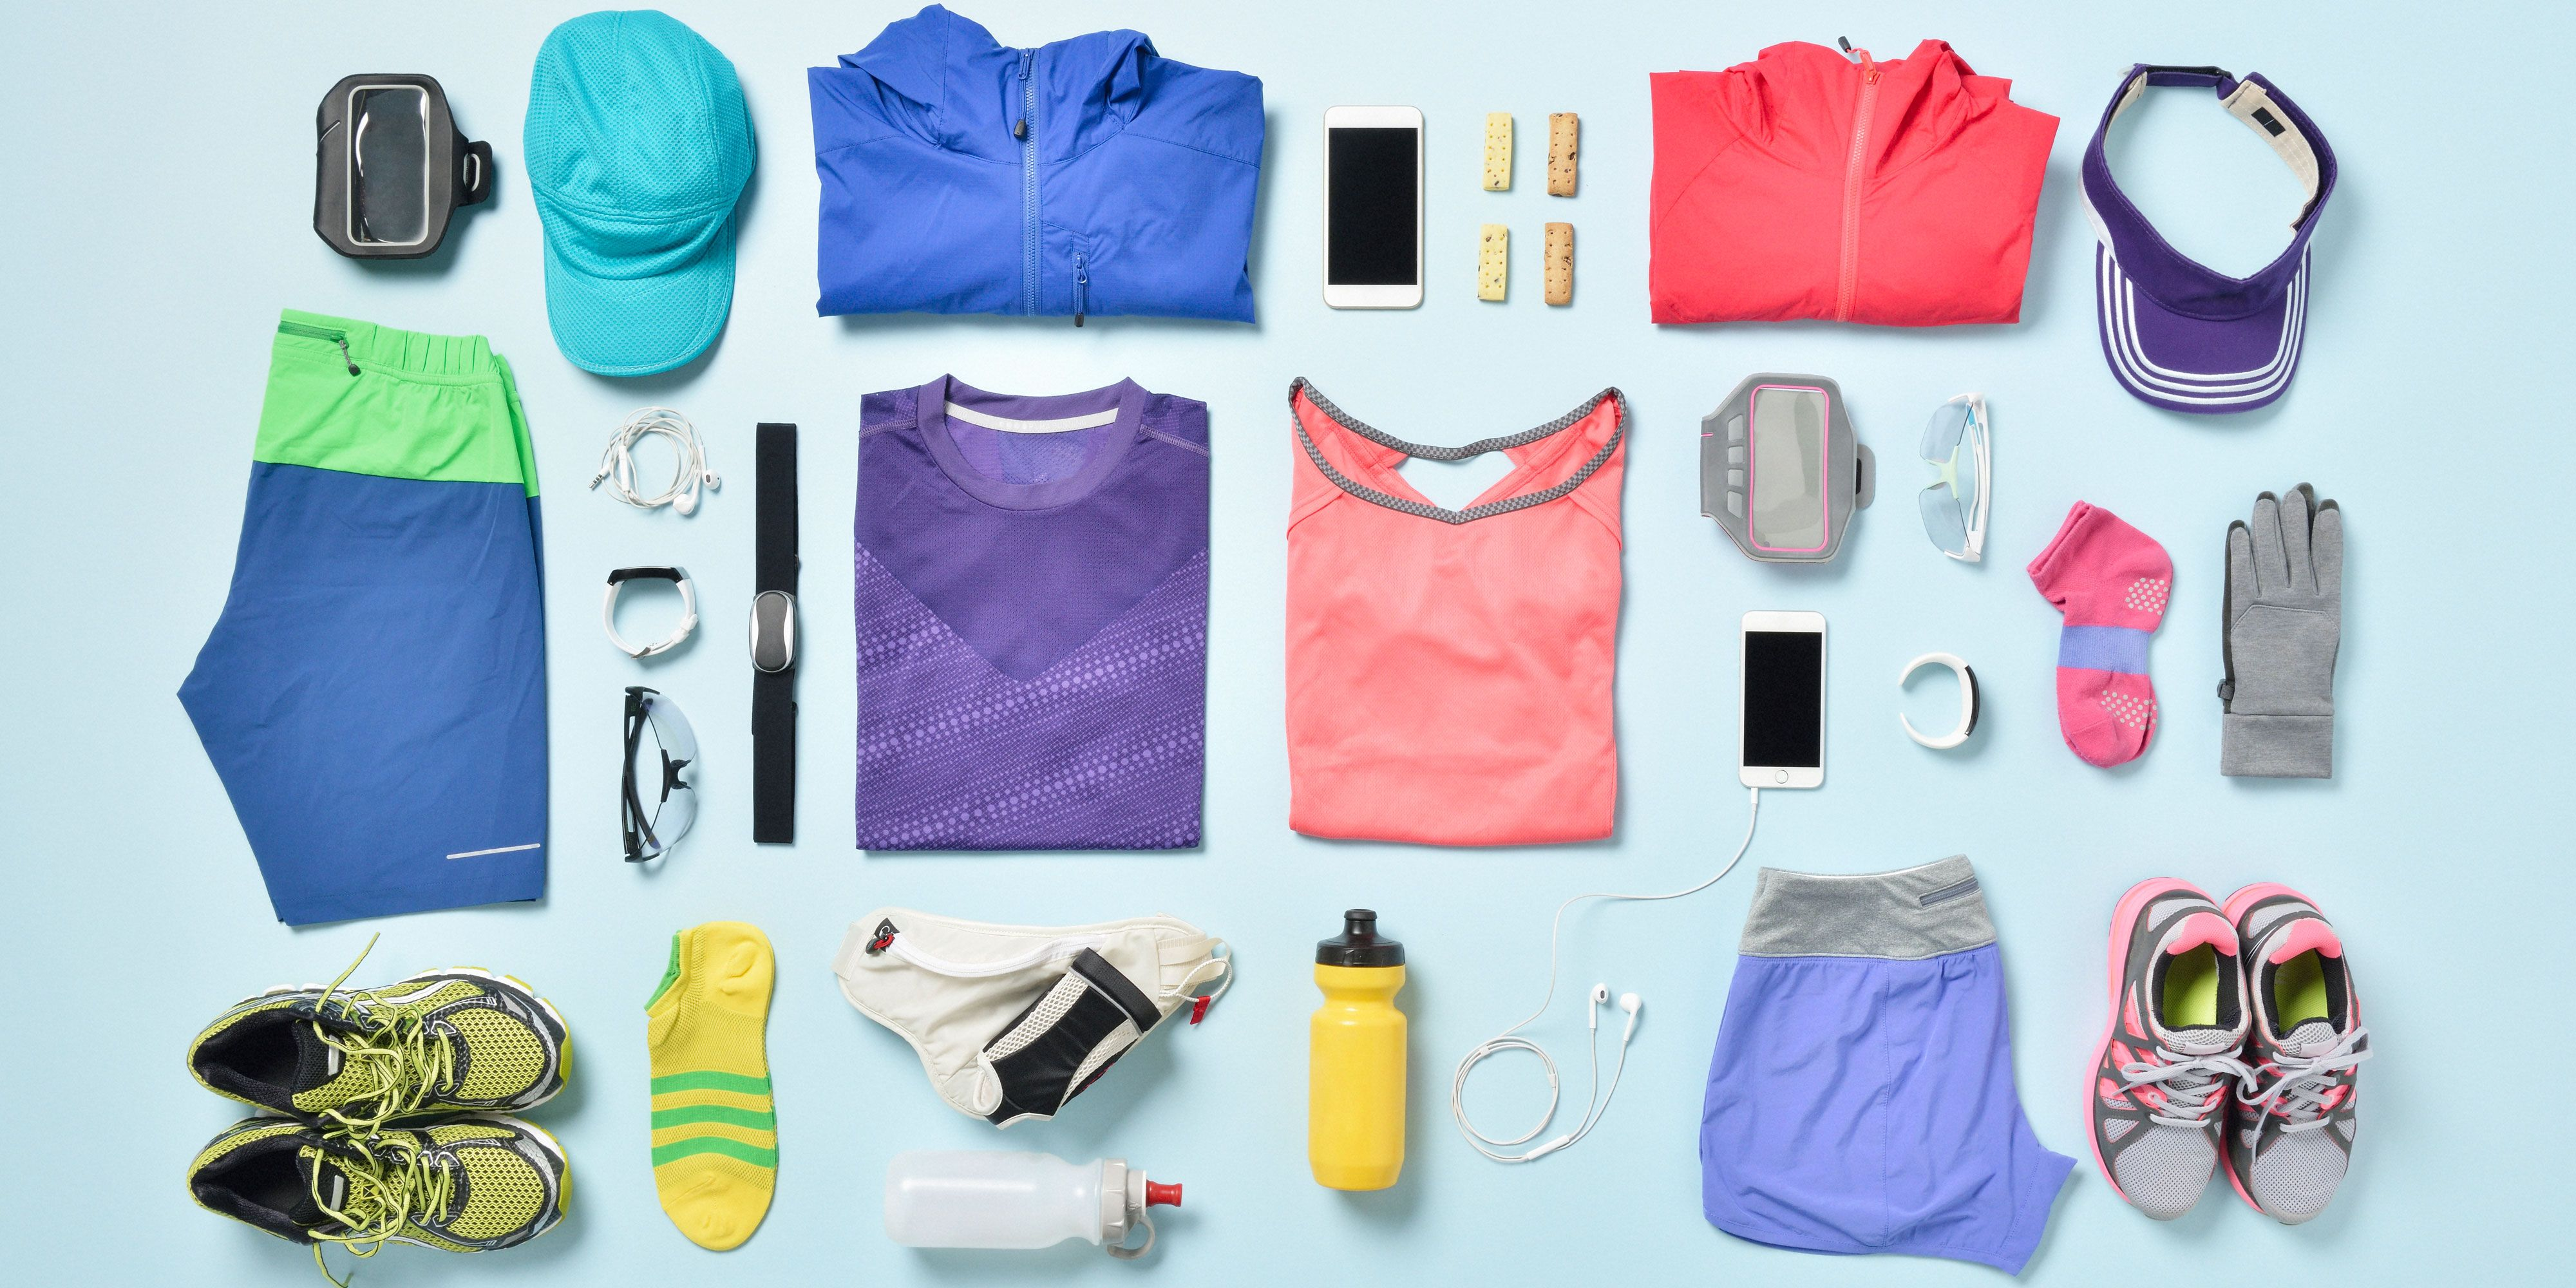 cc011dcb6253 How often you should wash your gym kit